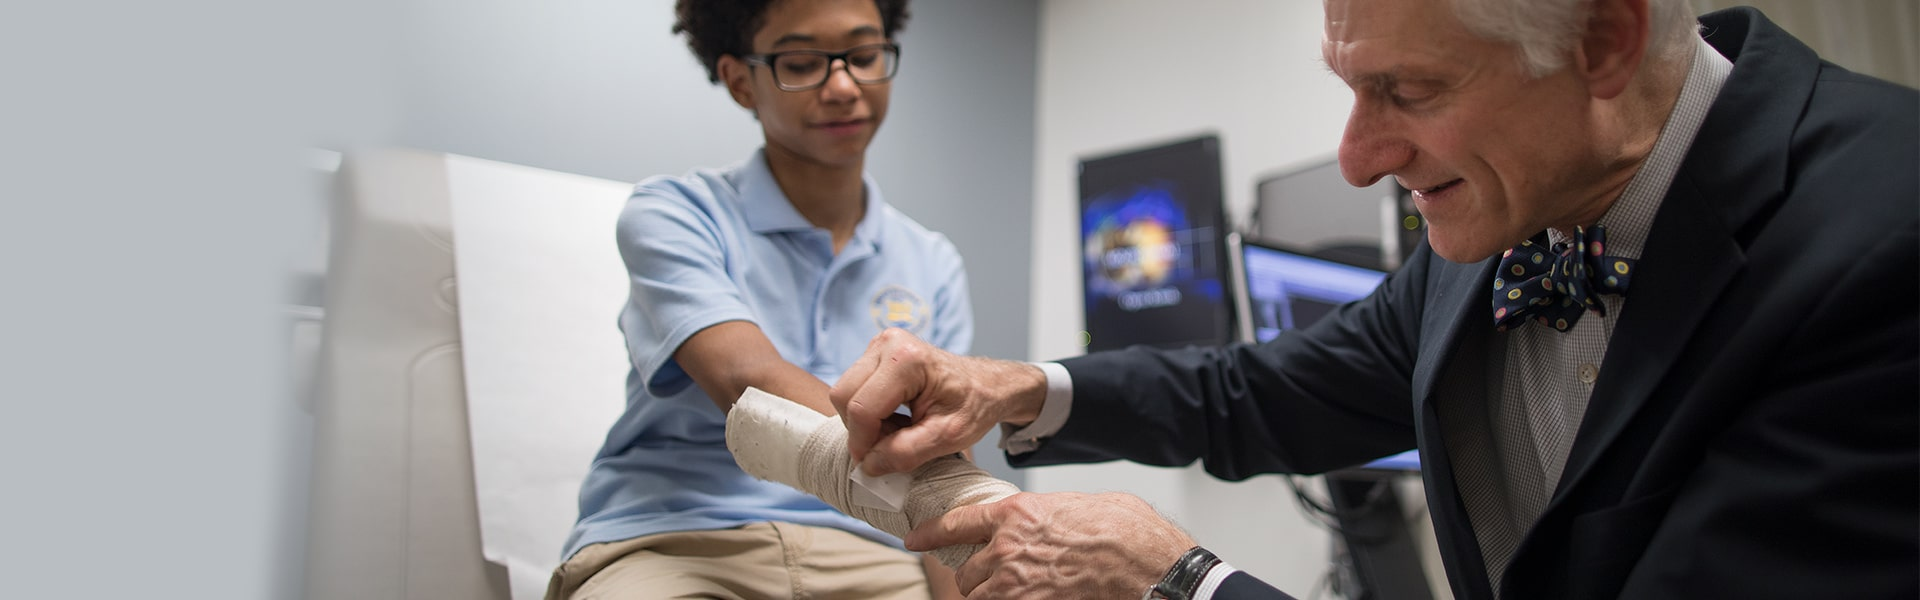 Orthopedic surgeon, Dr. Michael Hausman, with teen hand injury patient